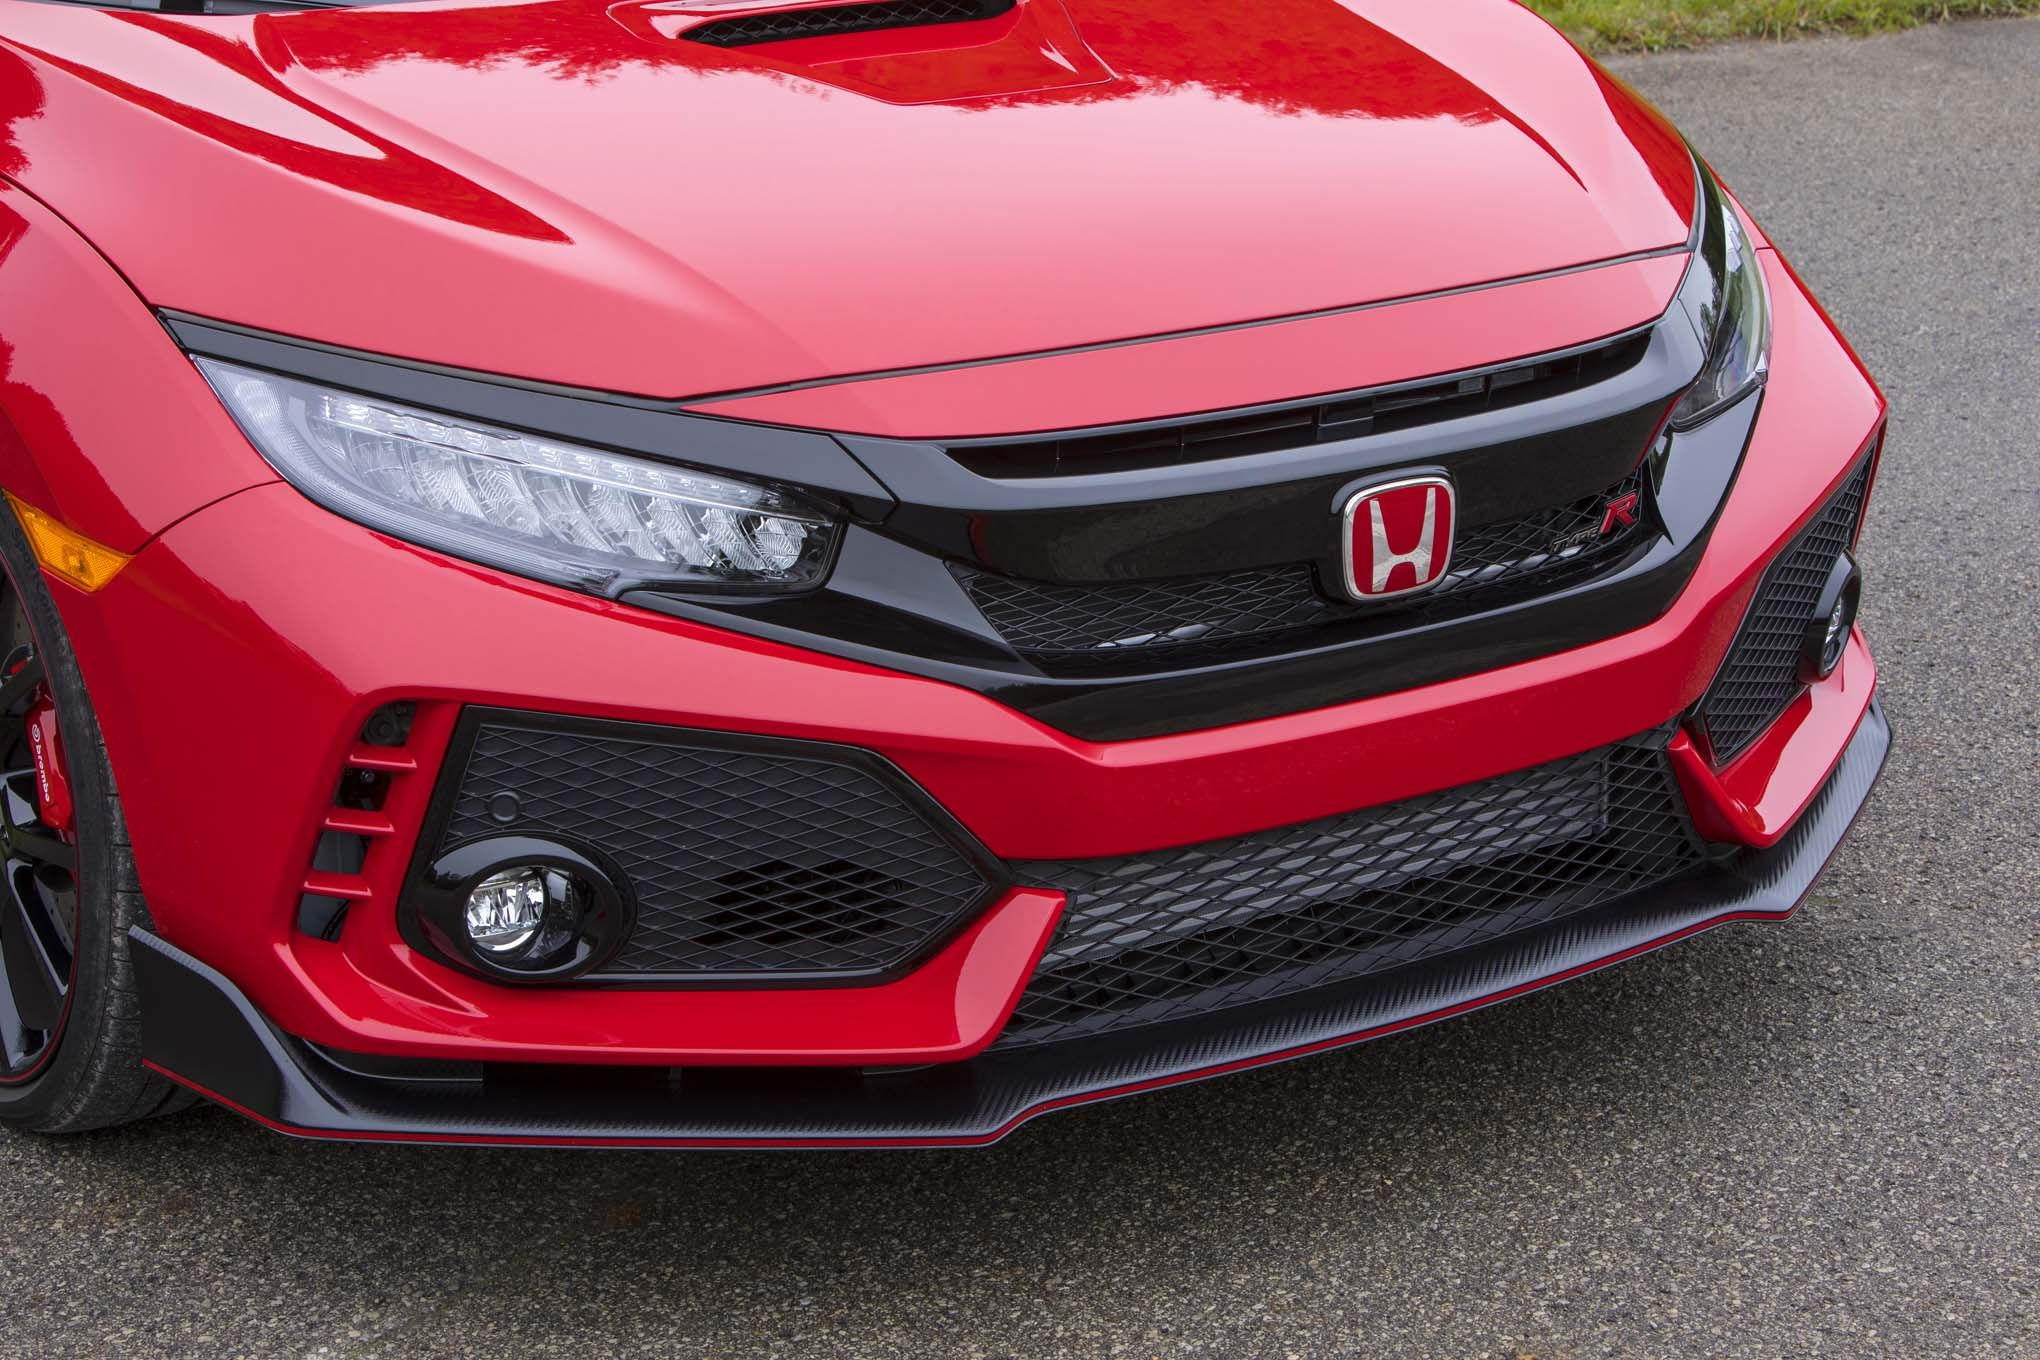 Honda Is Without A Doubt A Versatile Brand See How Honda Exceeds Expectations With All Of Their Vehicles Honda Civic Type R Honda Civic Car Honda Civic Sport